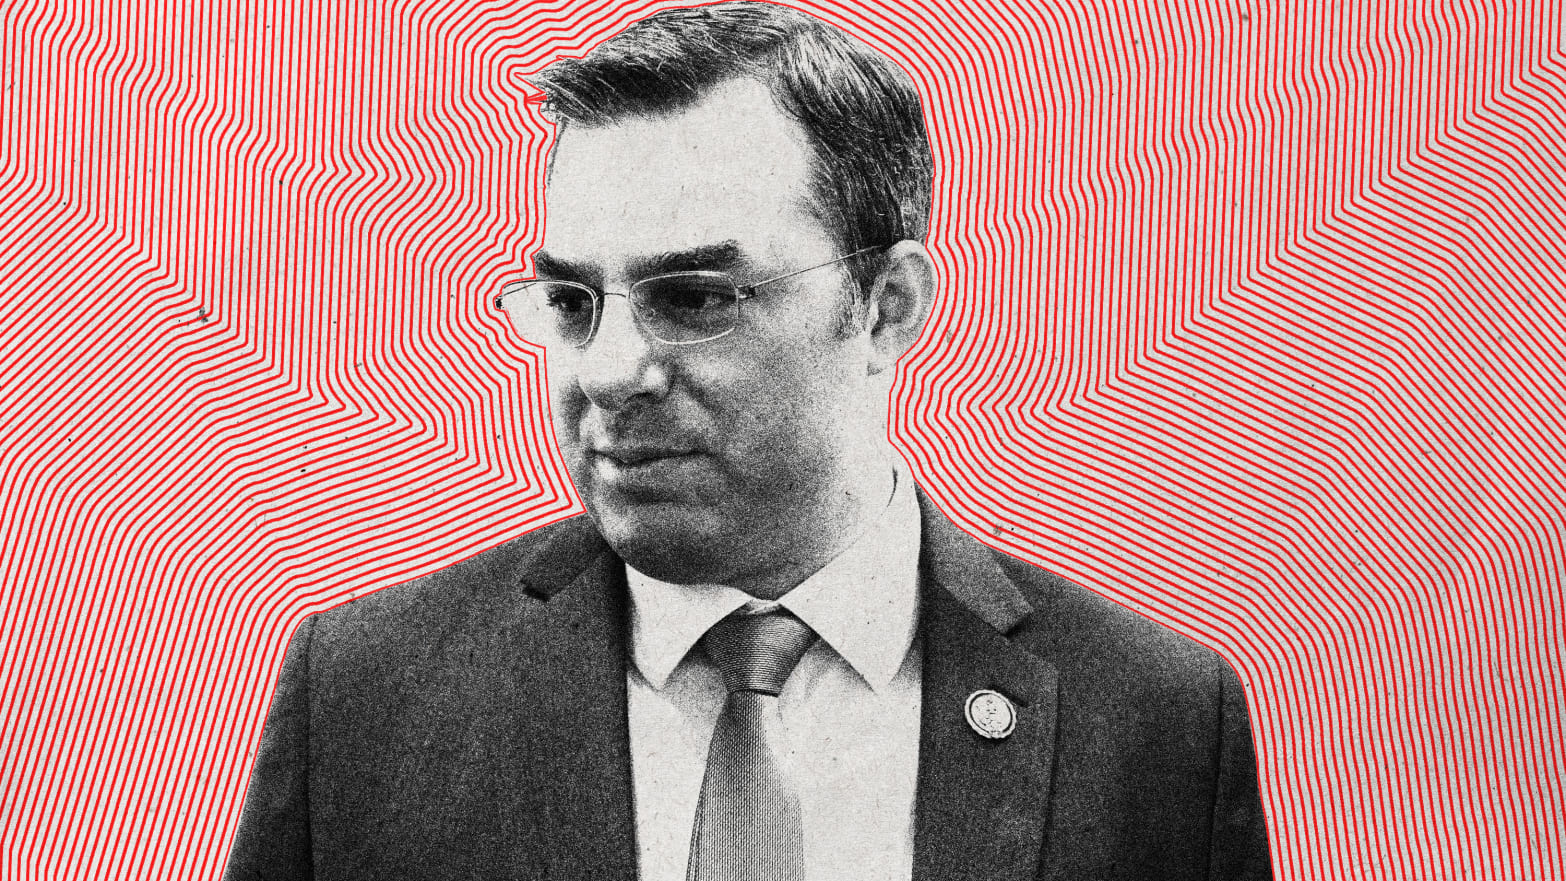 Justin Amash's Longtime Backers, The Devos Family, Cool on Him as He Once Again Draws Trump's Wrath